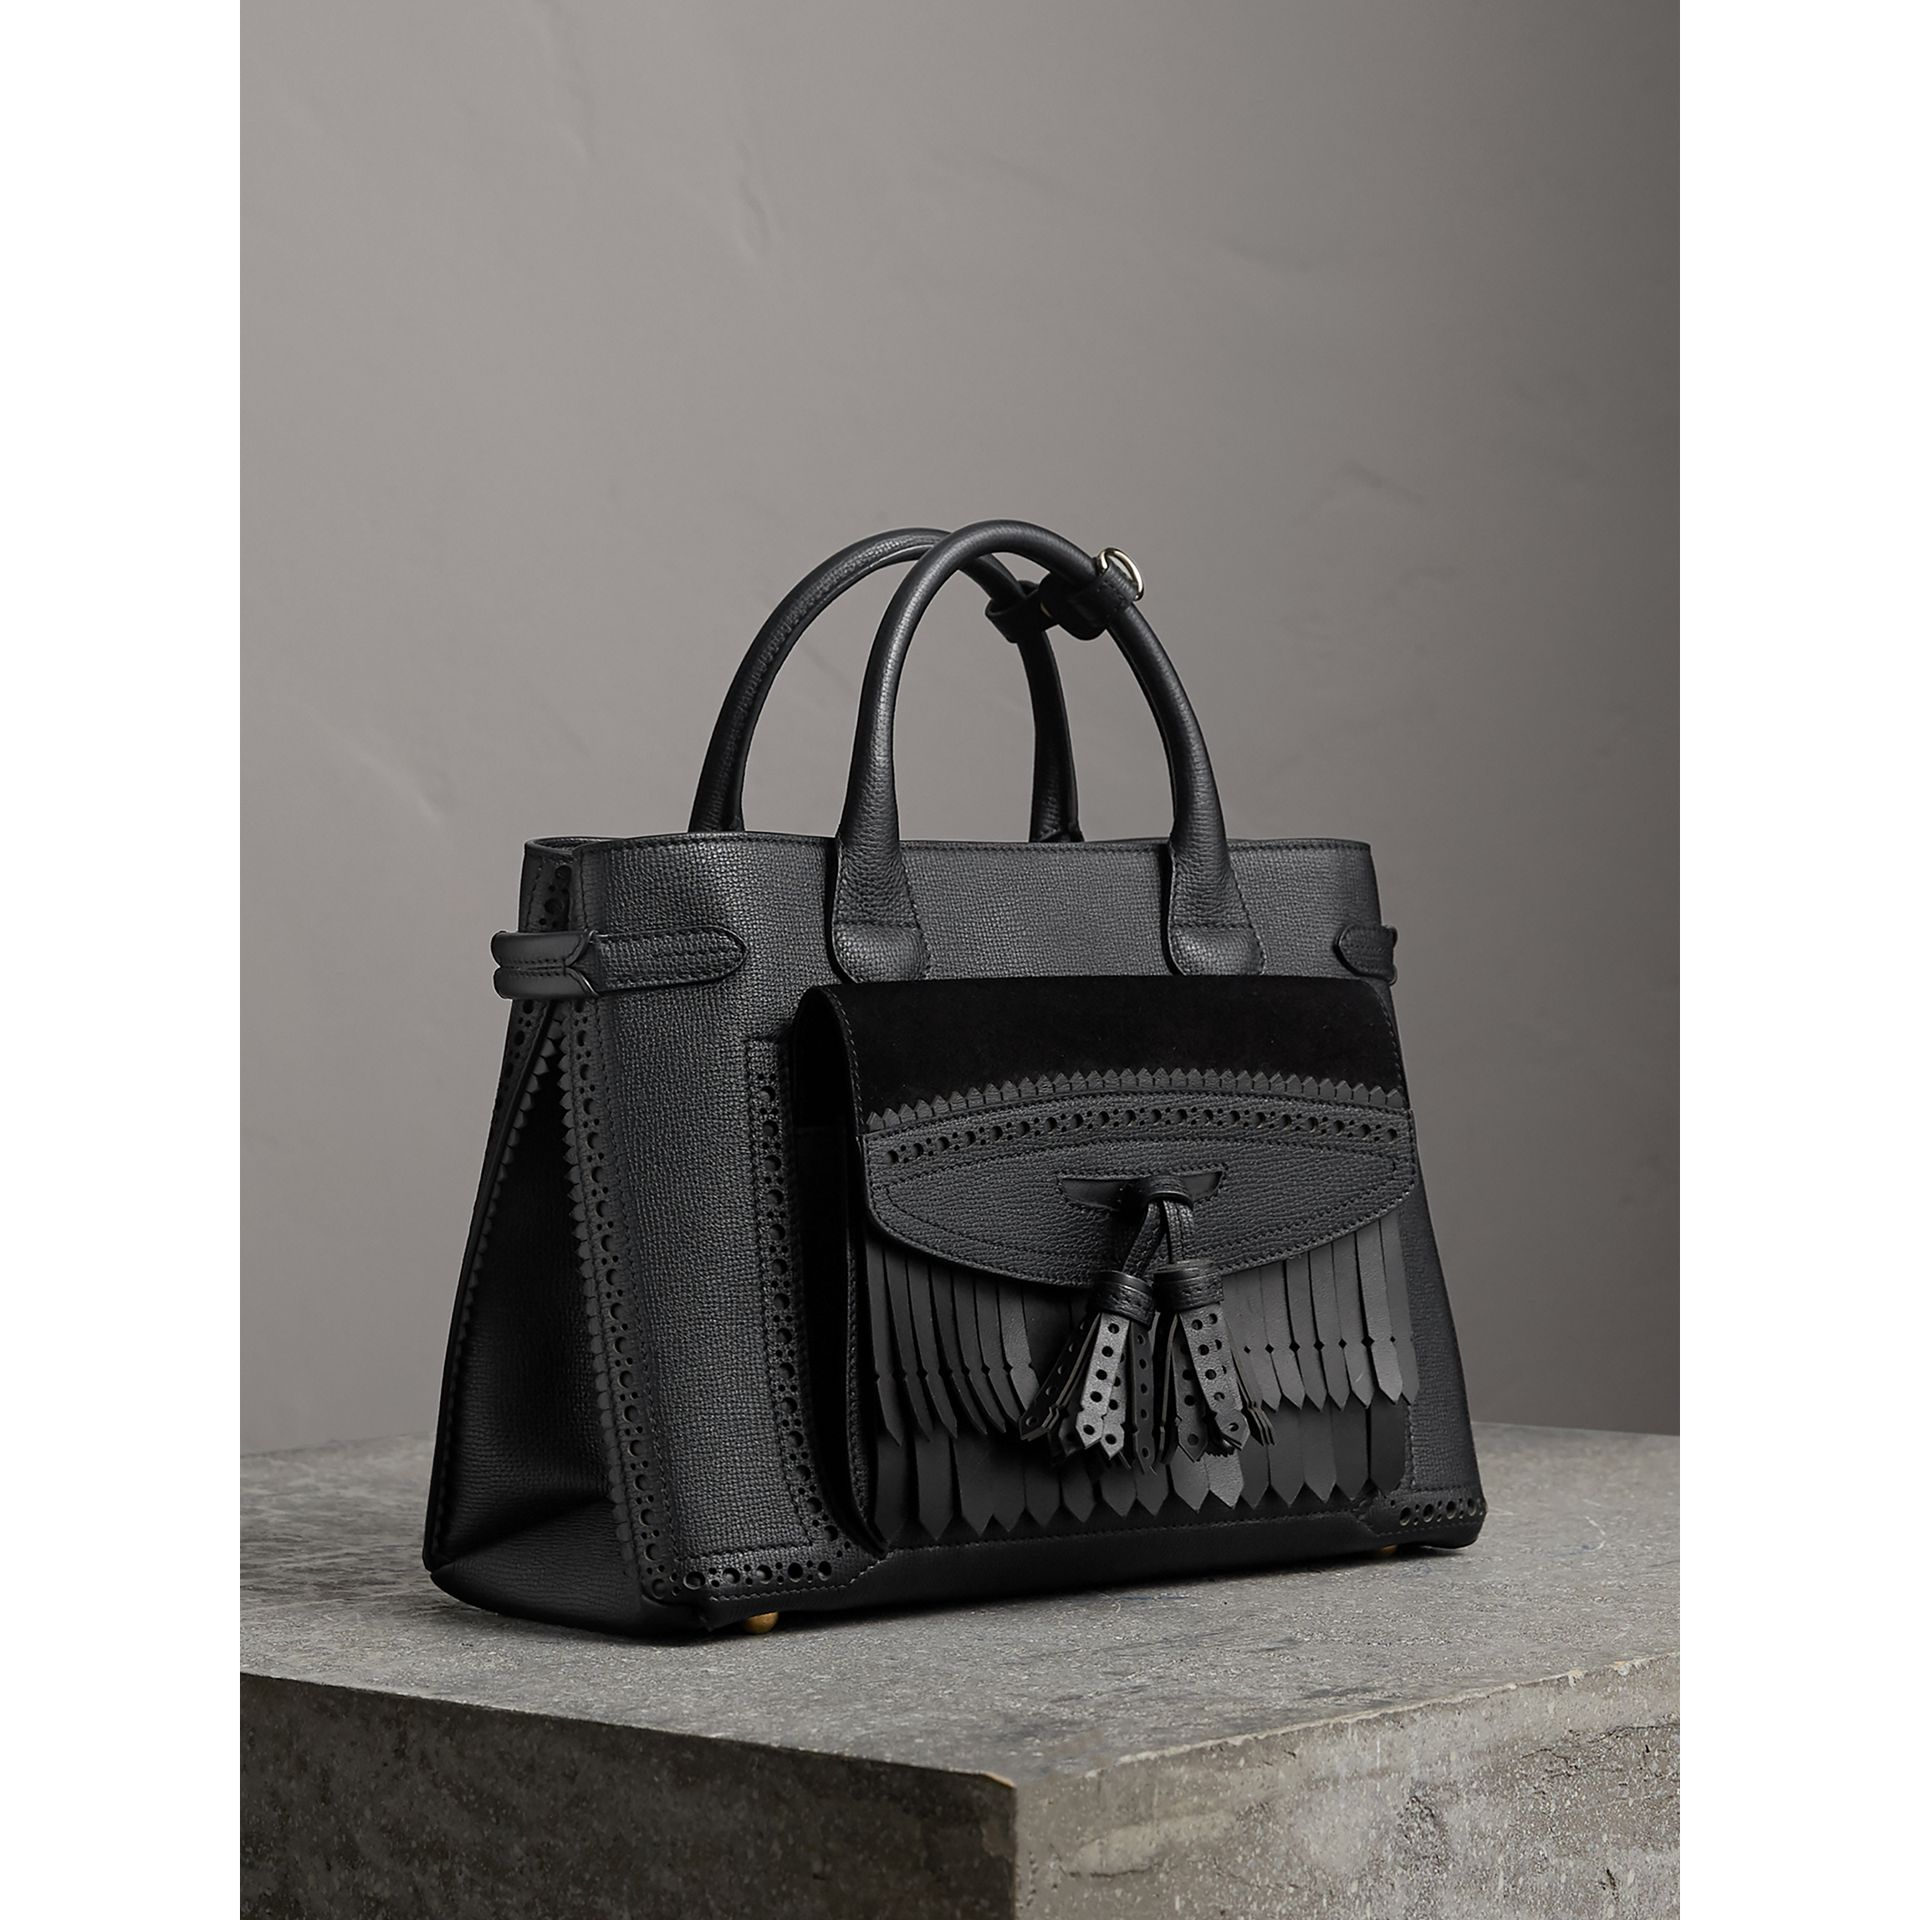 Sac The Banner moyen de style richelieu (Noir) - Femme | Burberry Canada - photo de la galerie 0